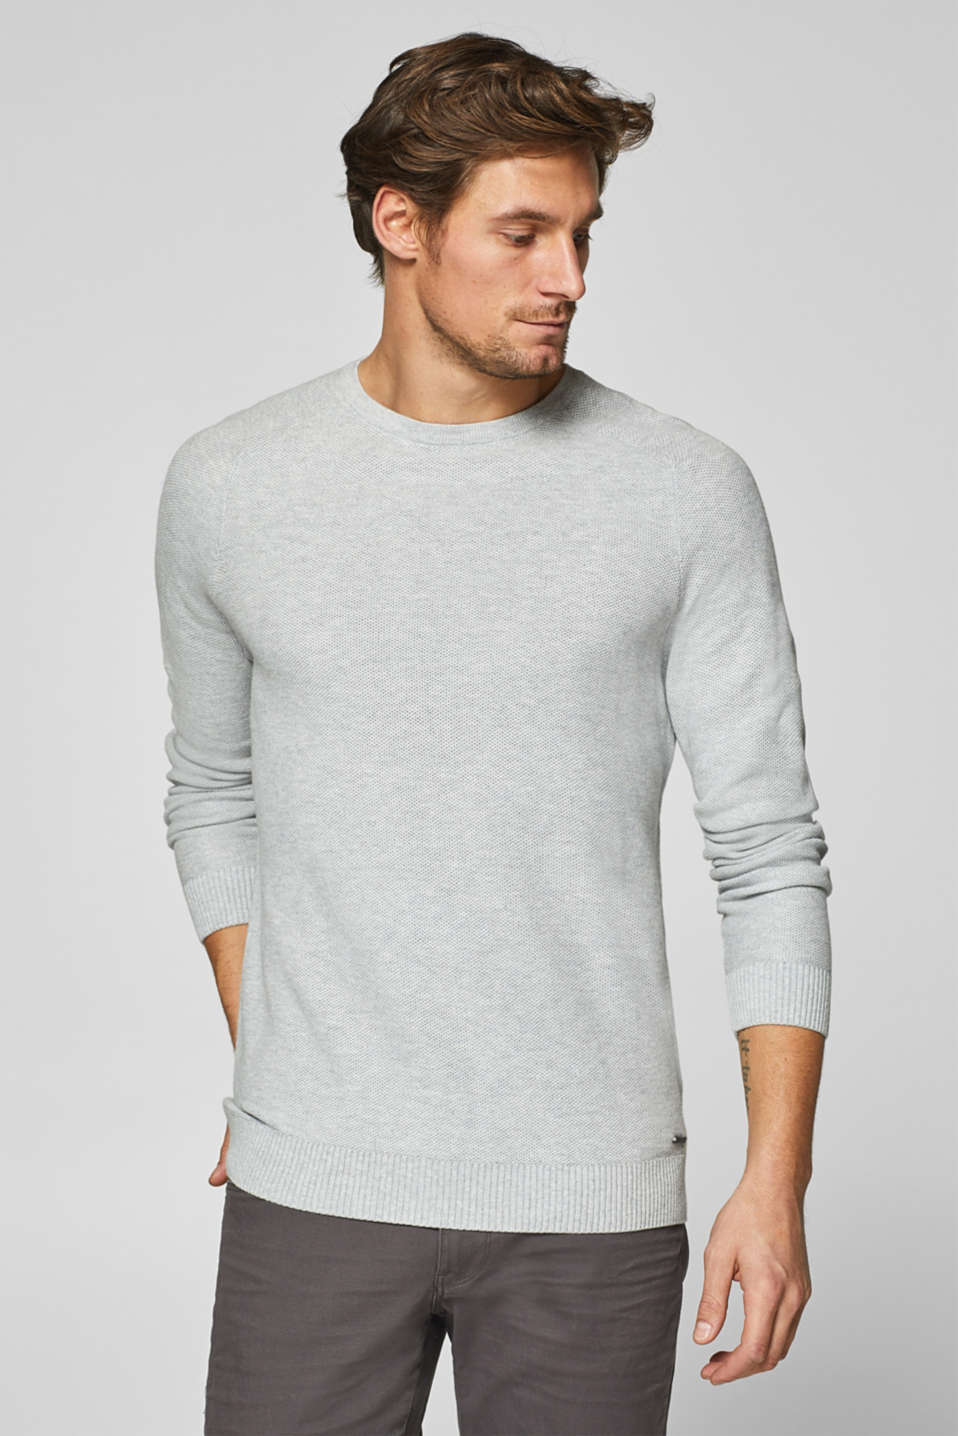 Esprit - Jumper with a honeycomb texture, 100% cotton